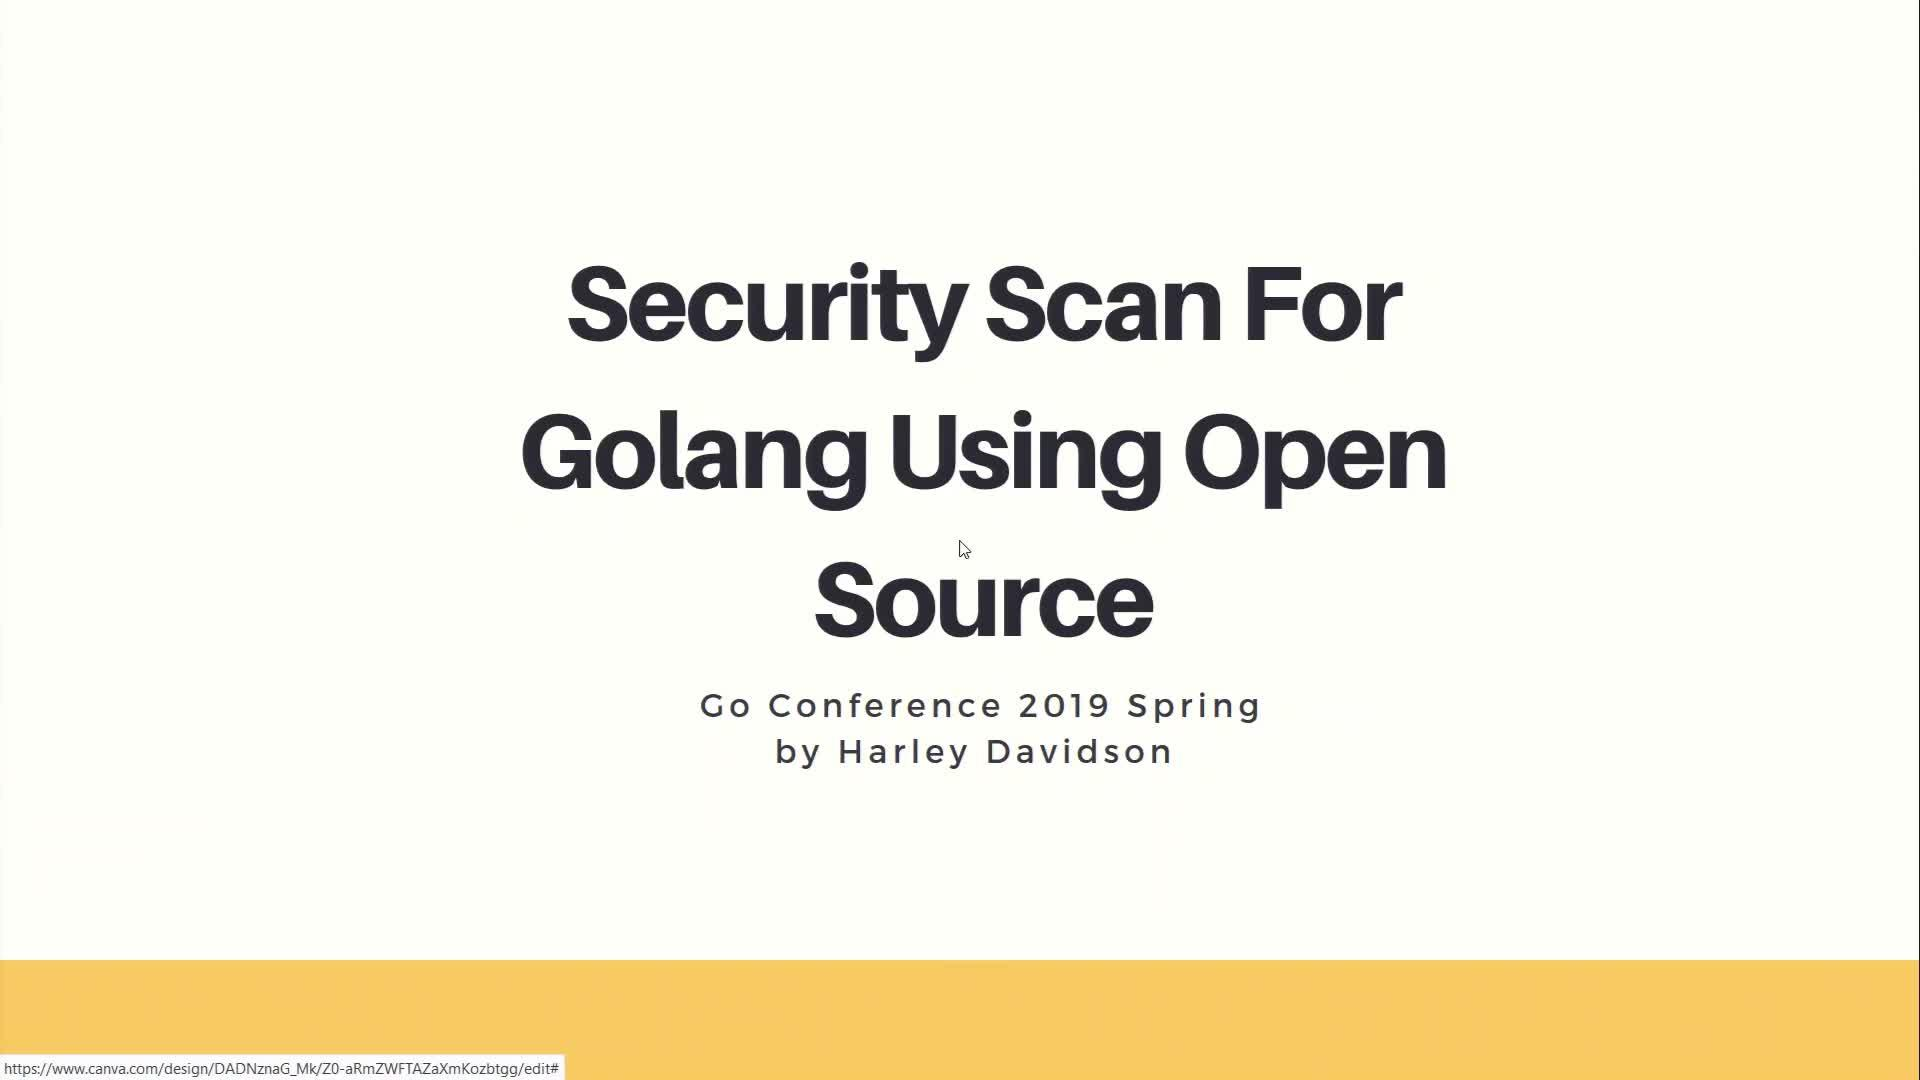 Security Scan For Golang Using Open Source